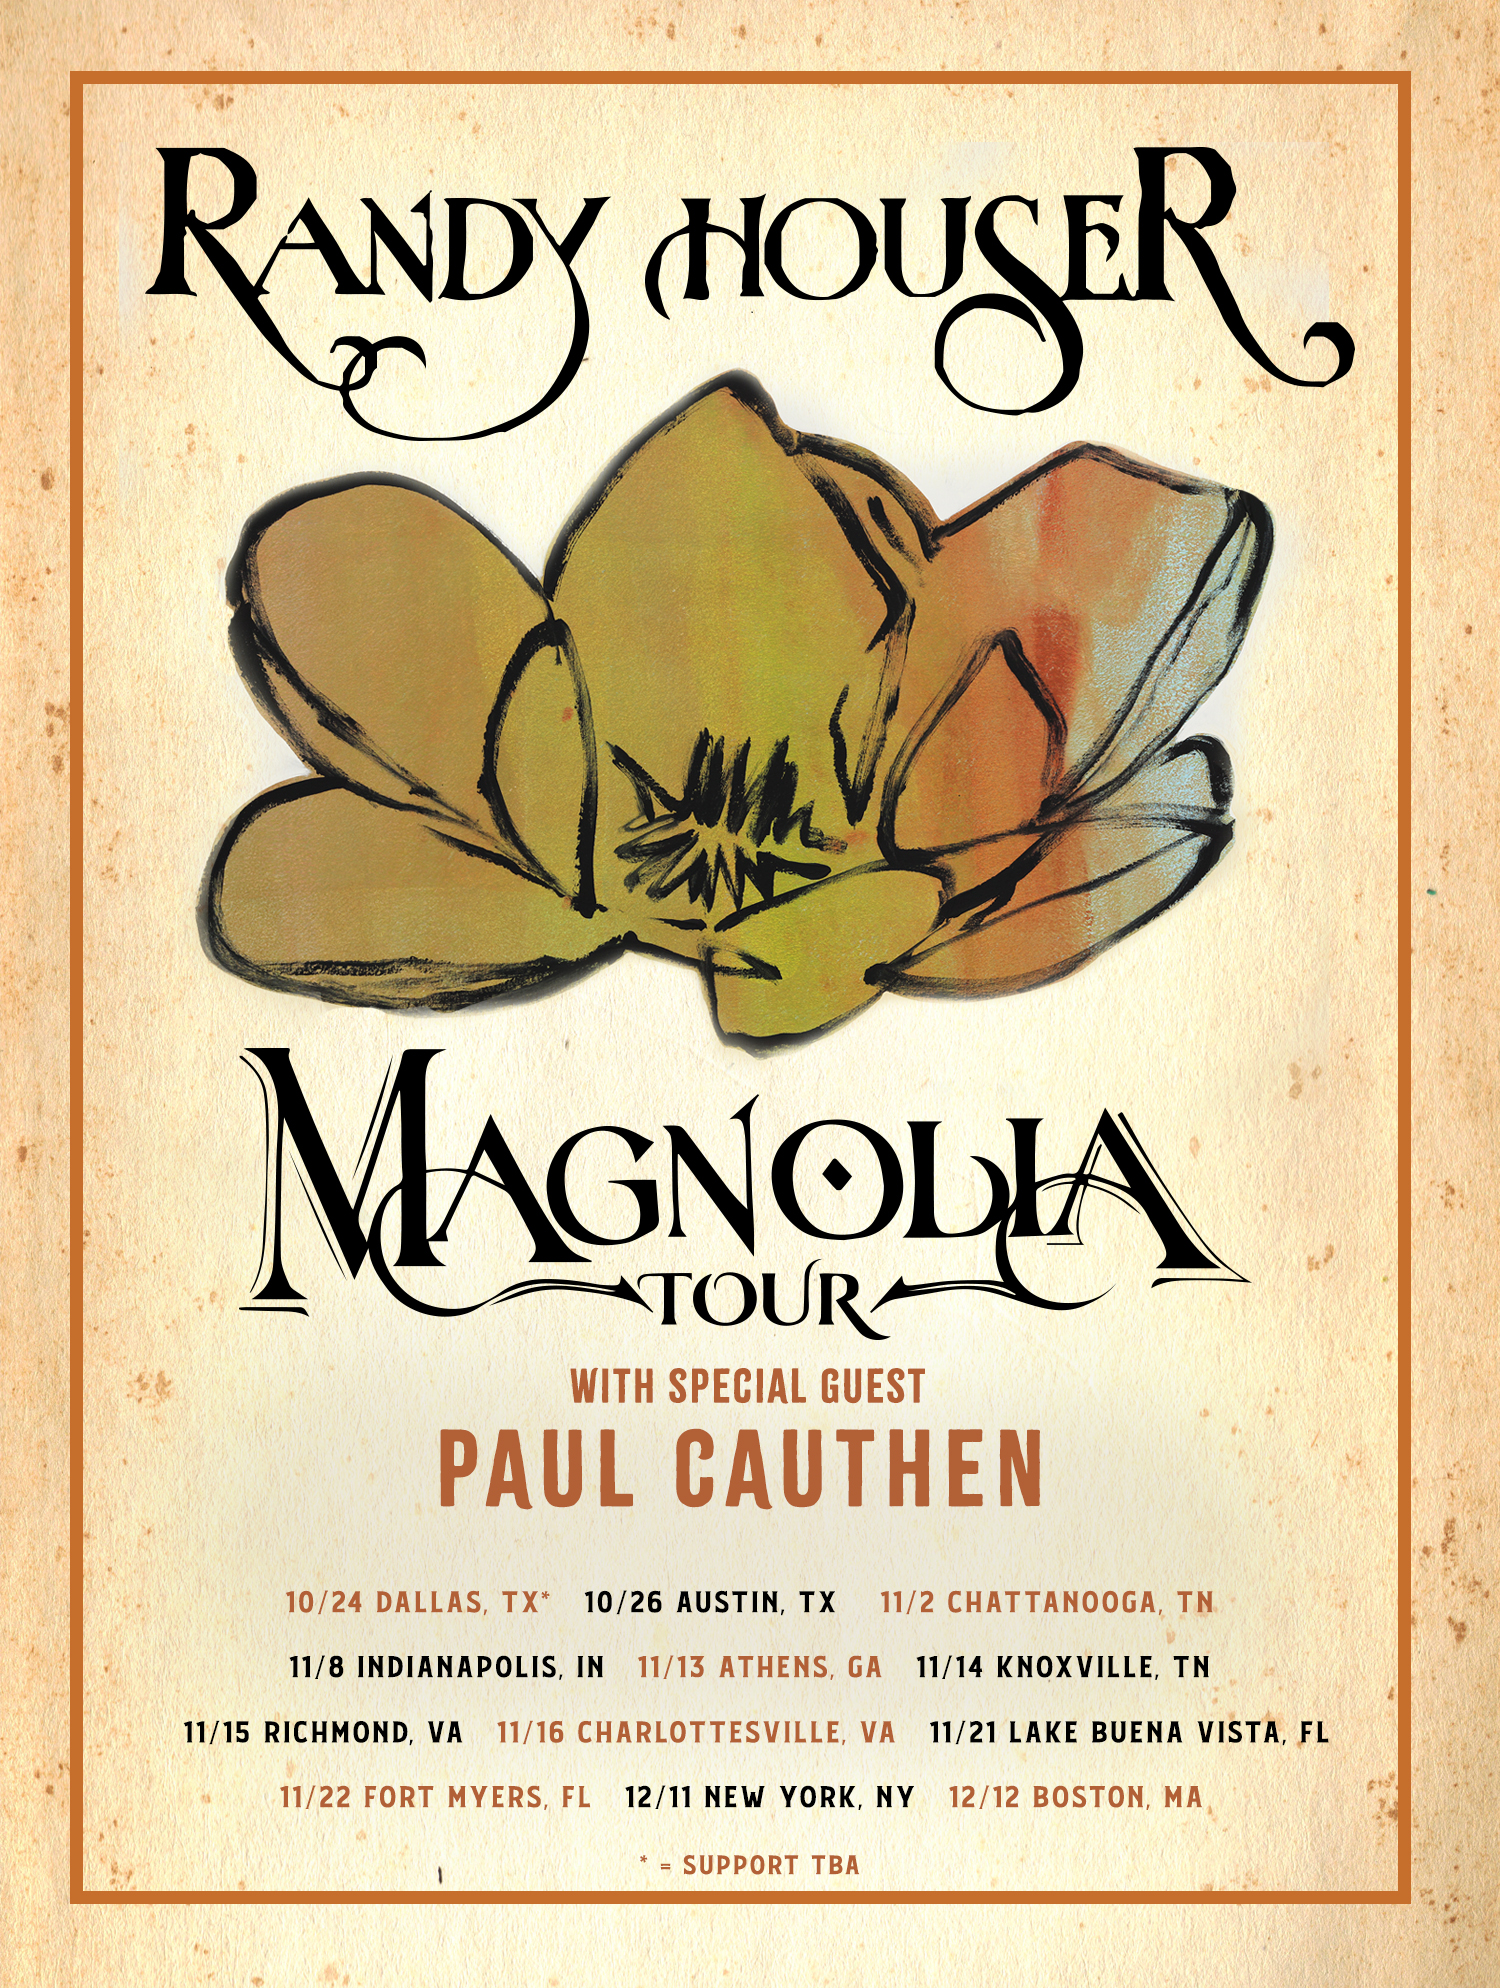 RANDY HOUSER TO SET OUT ON FALL 2019 MAGNOLIA TOUR